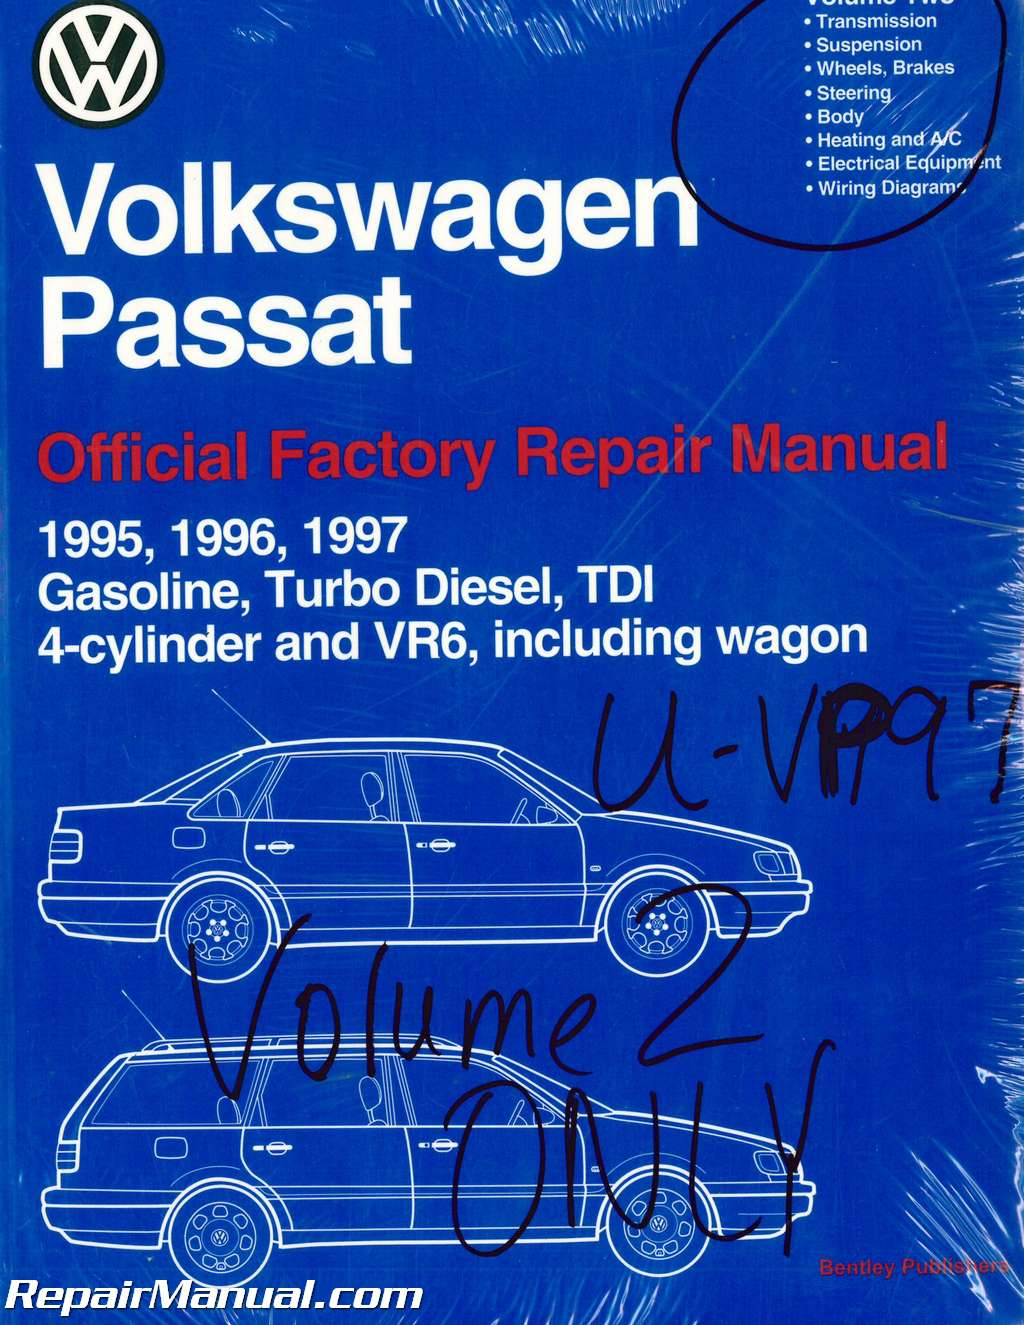 hight resolution of volume 2 only volkswagen passat b4 repair manual 1995 1996volume 2 only volkswagen